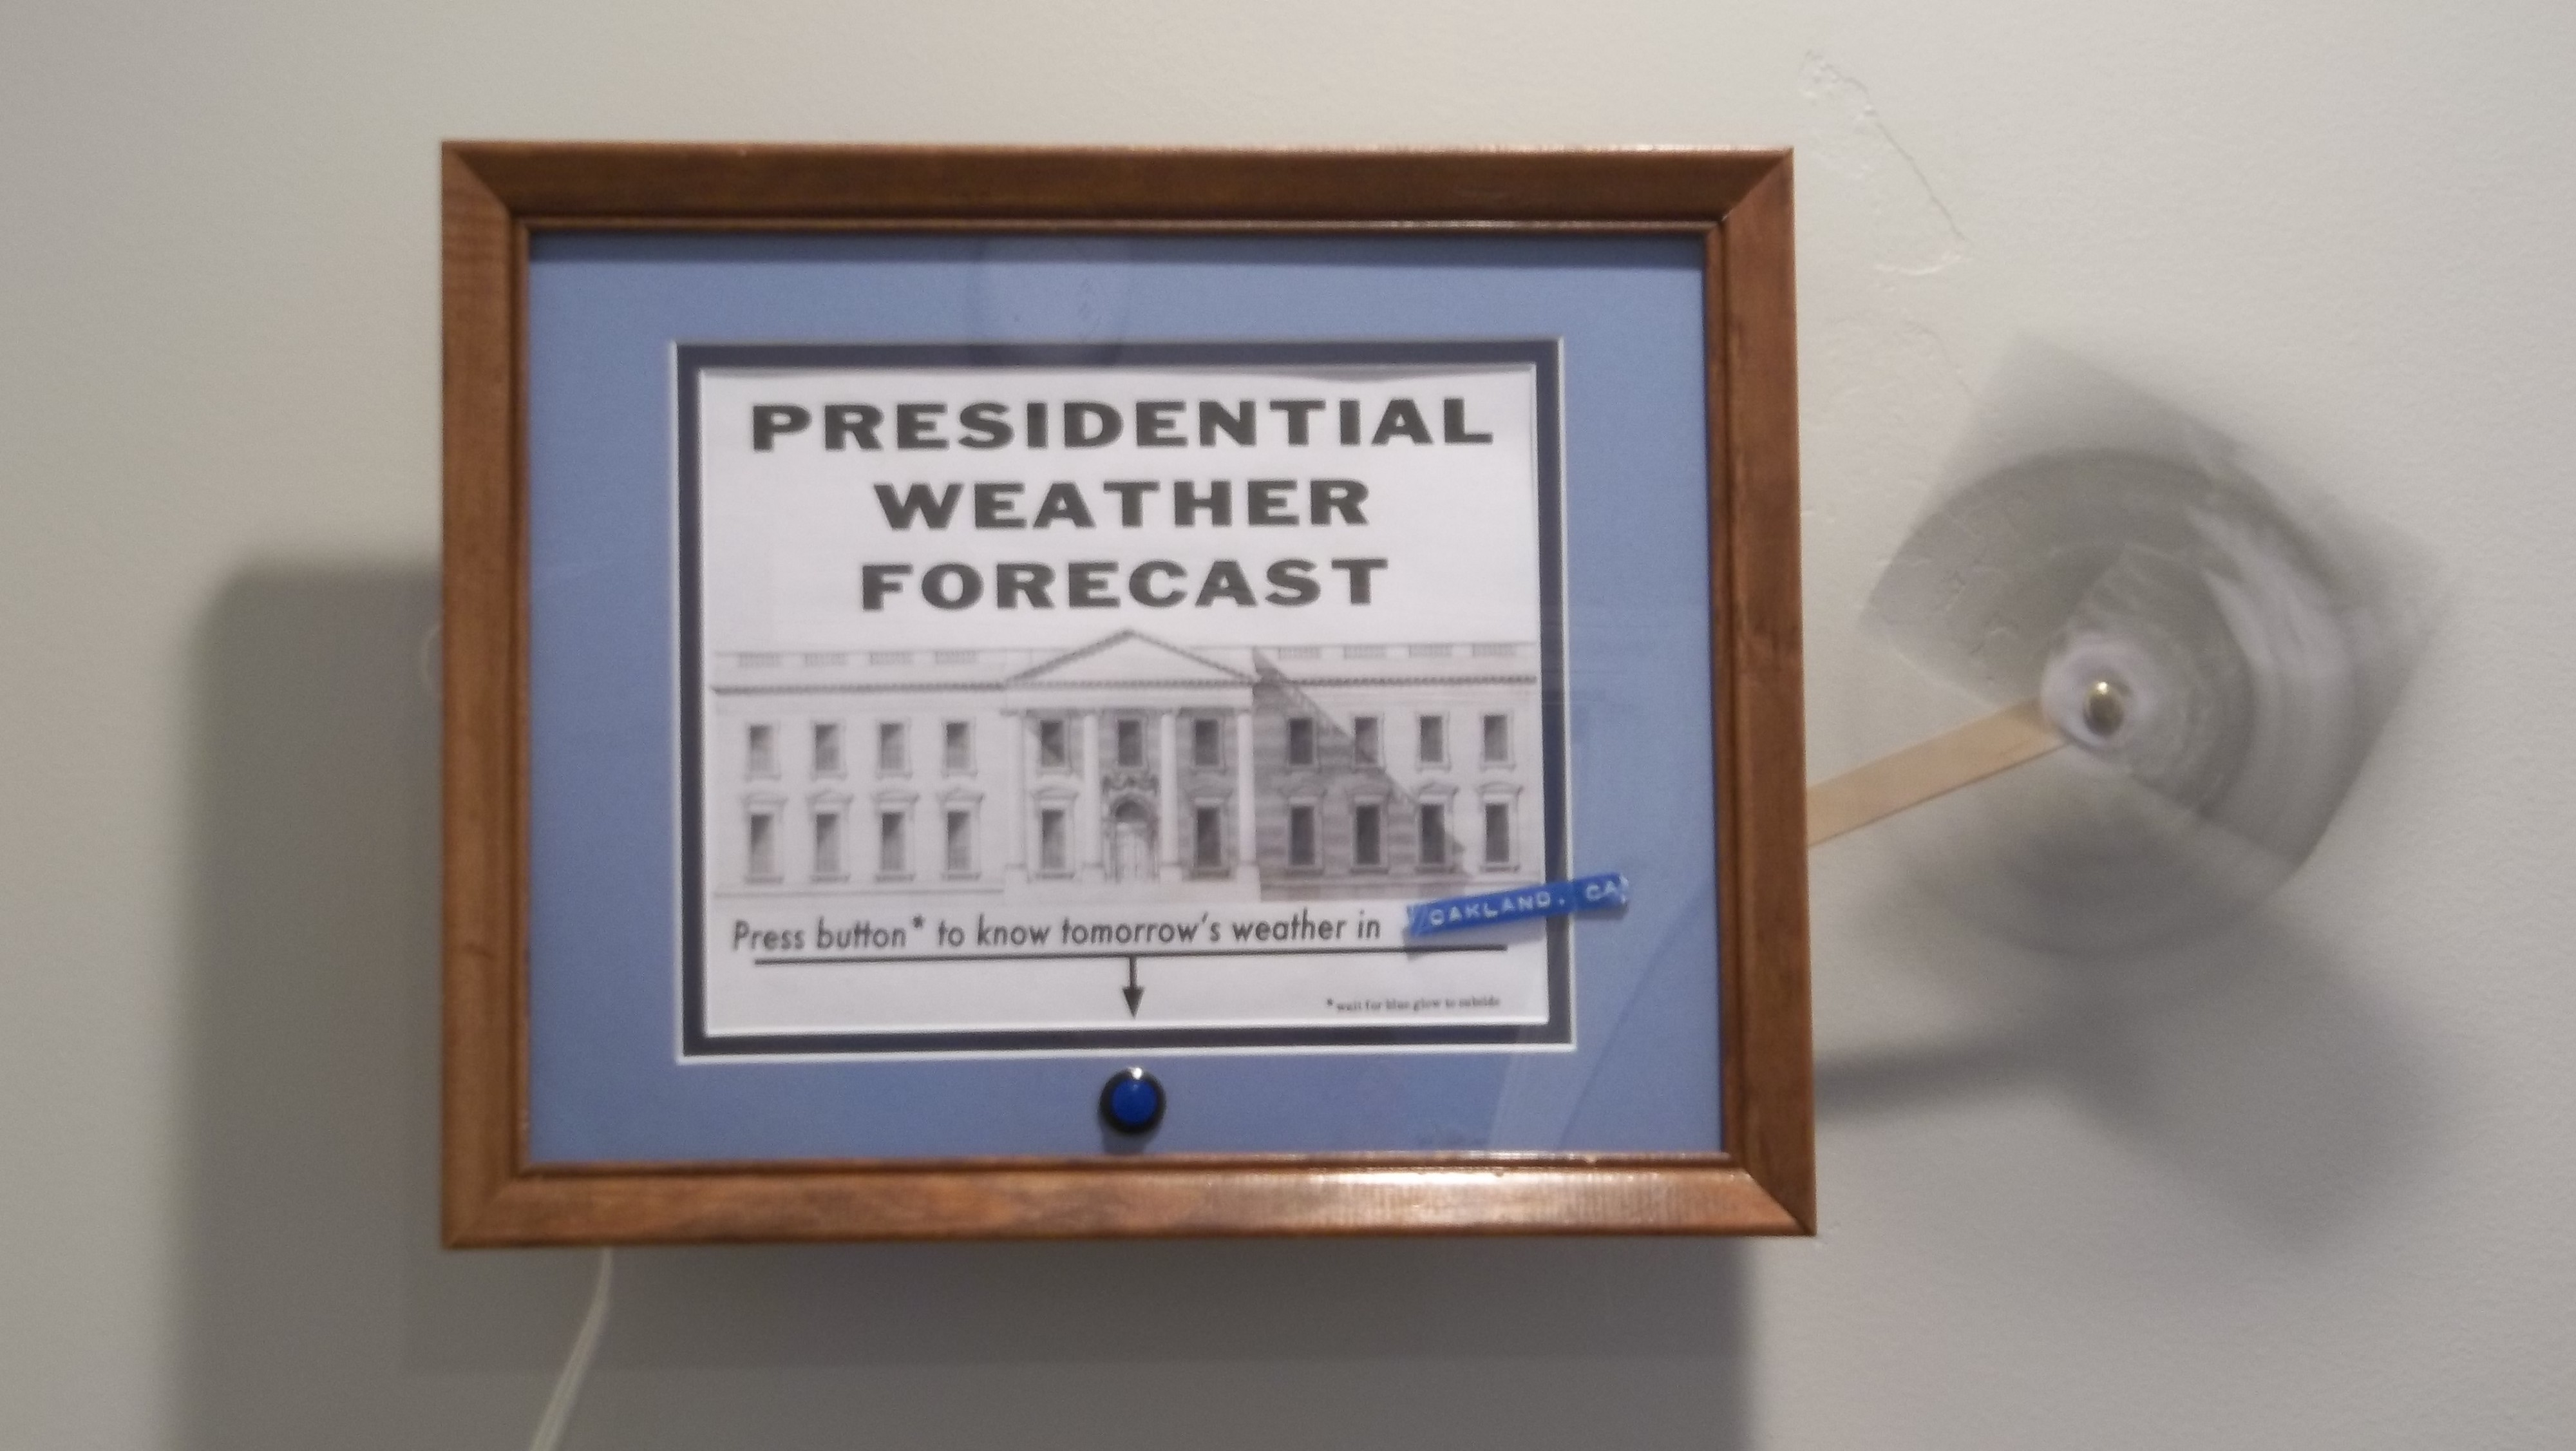 The Presidential Weather Forecast Machine is an Internet of thing inspired by a 2018 news story